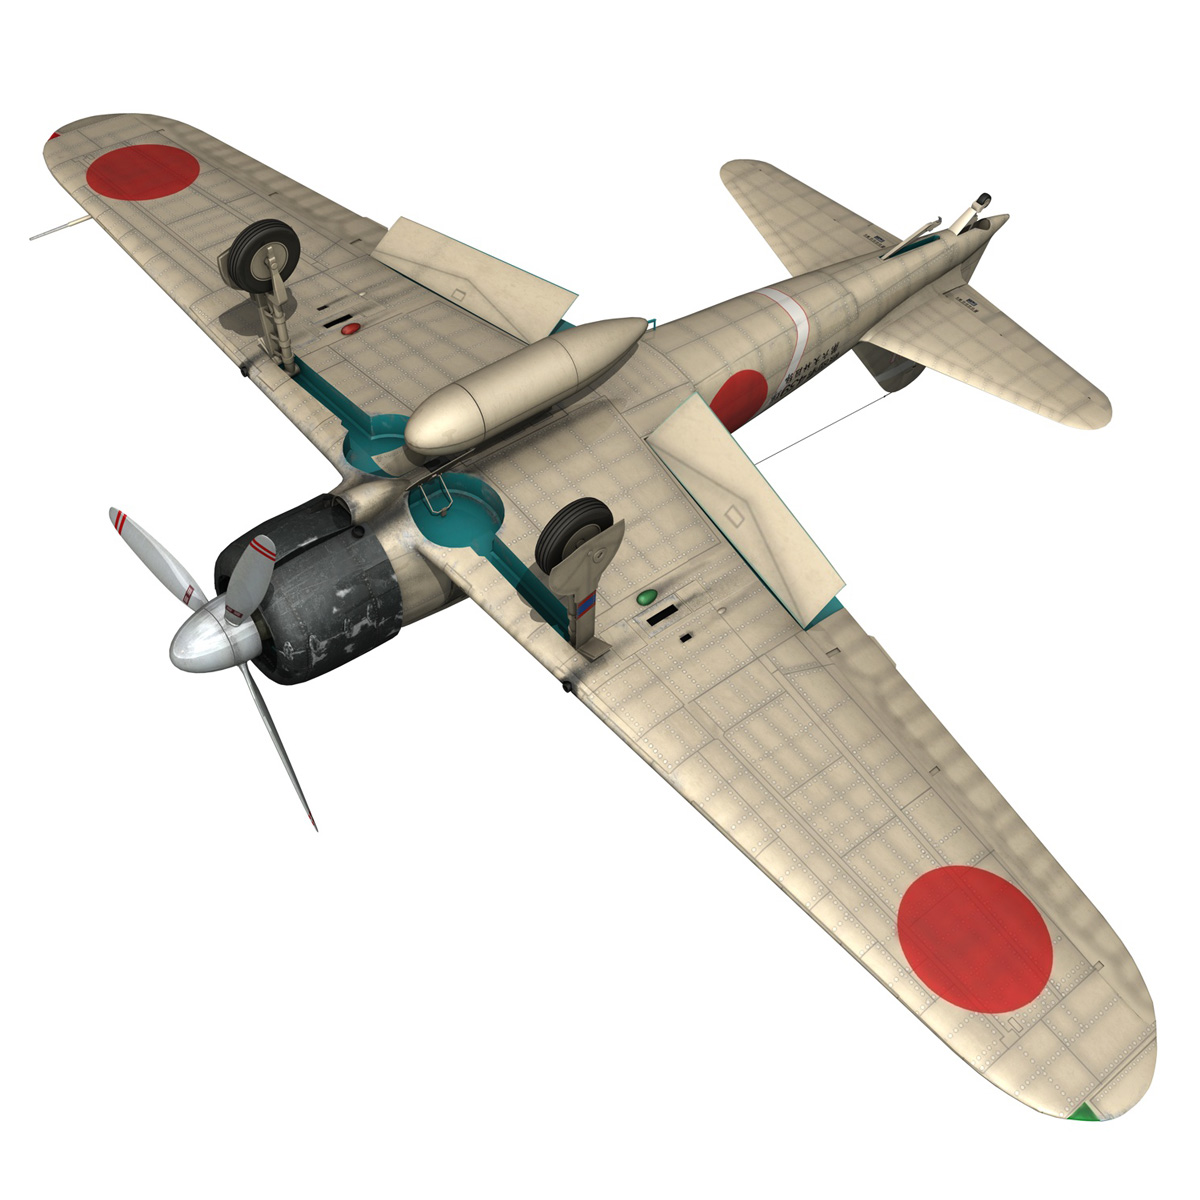 mitsubishi a6m2 zero – tainan air group 3d model fbx lwo obj 272724